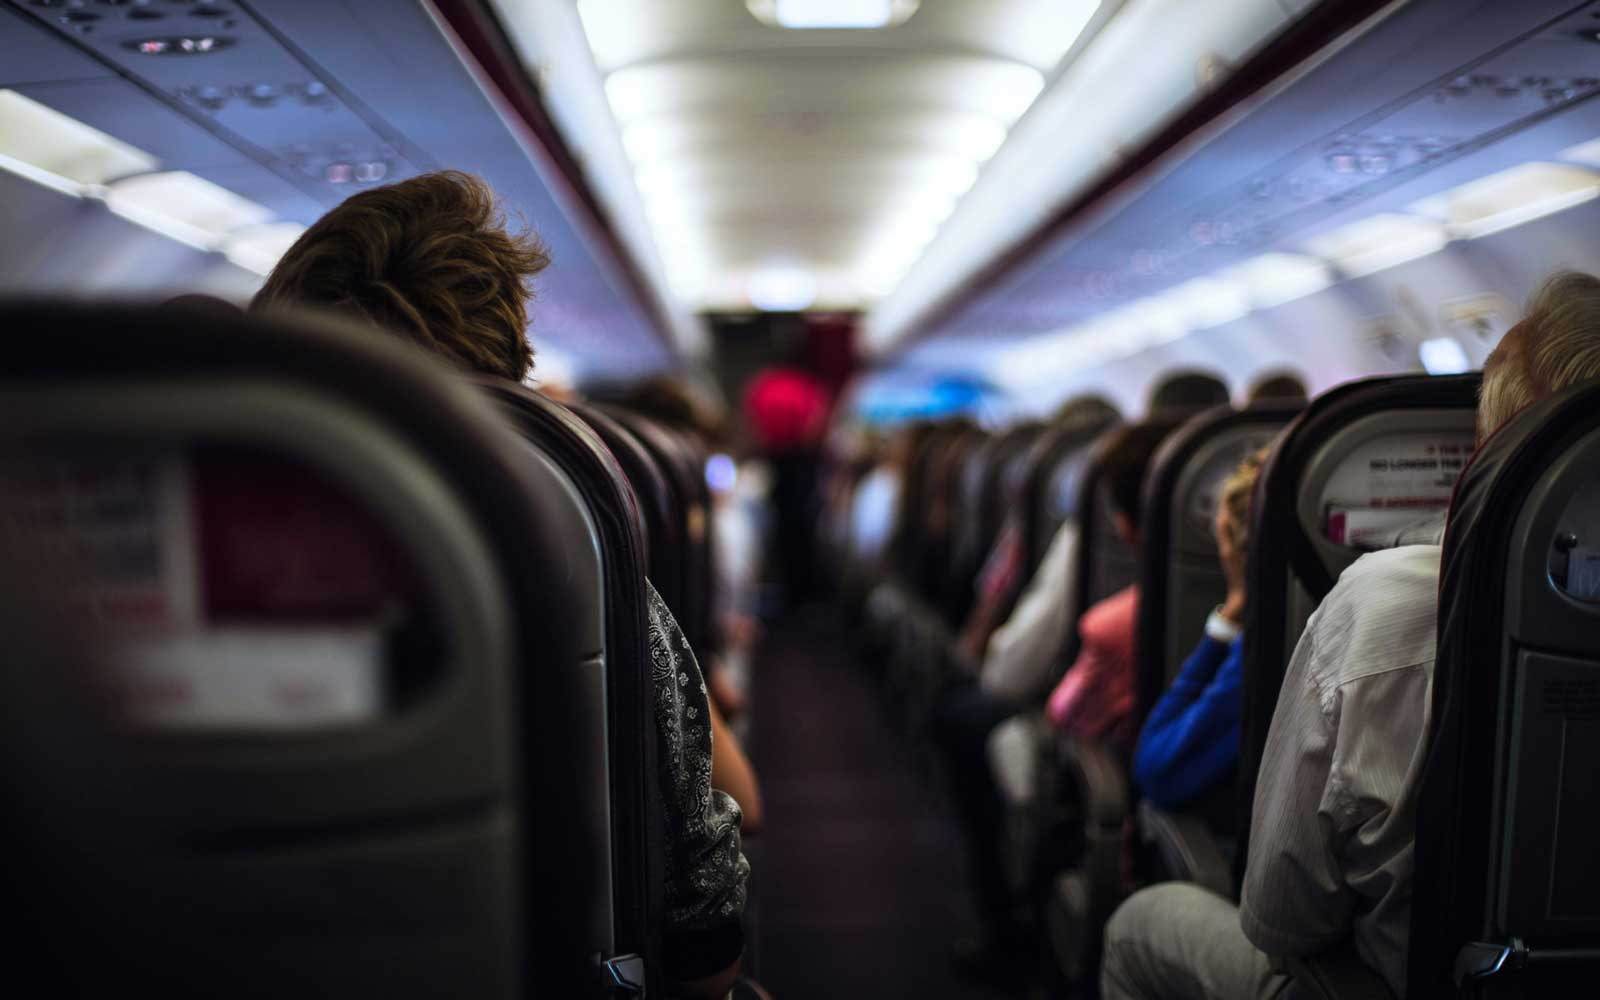 Interior Of An Airplane with Passengers